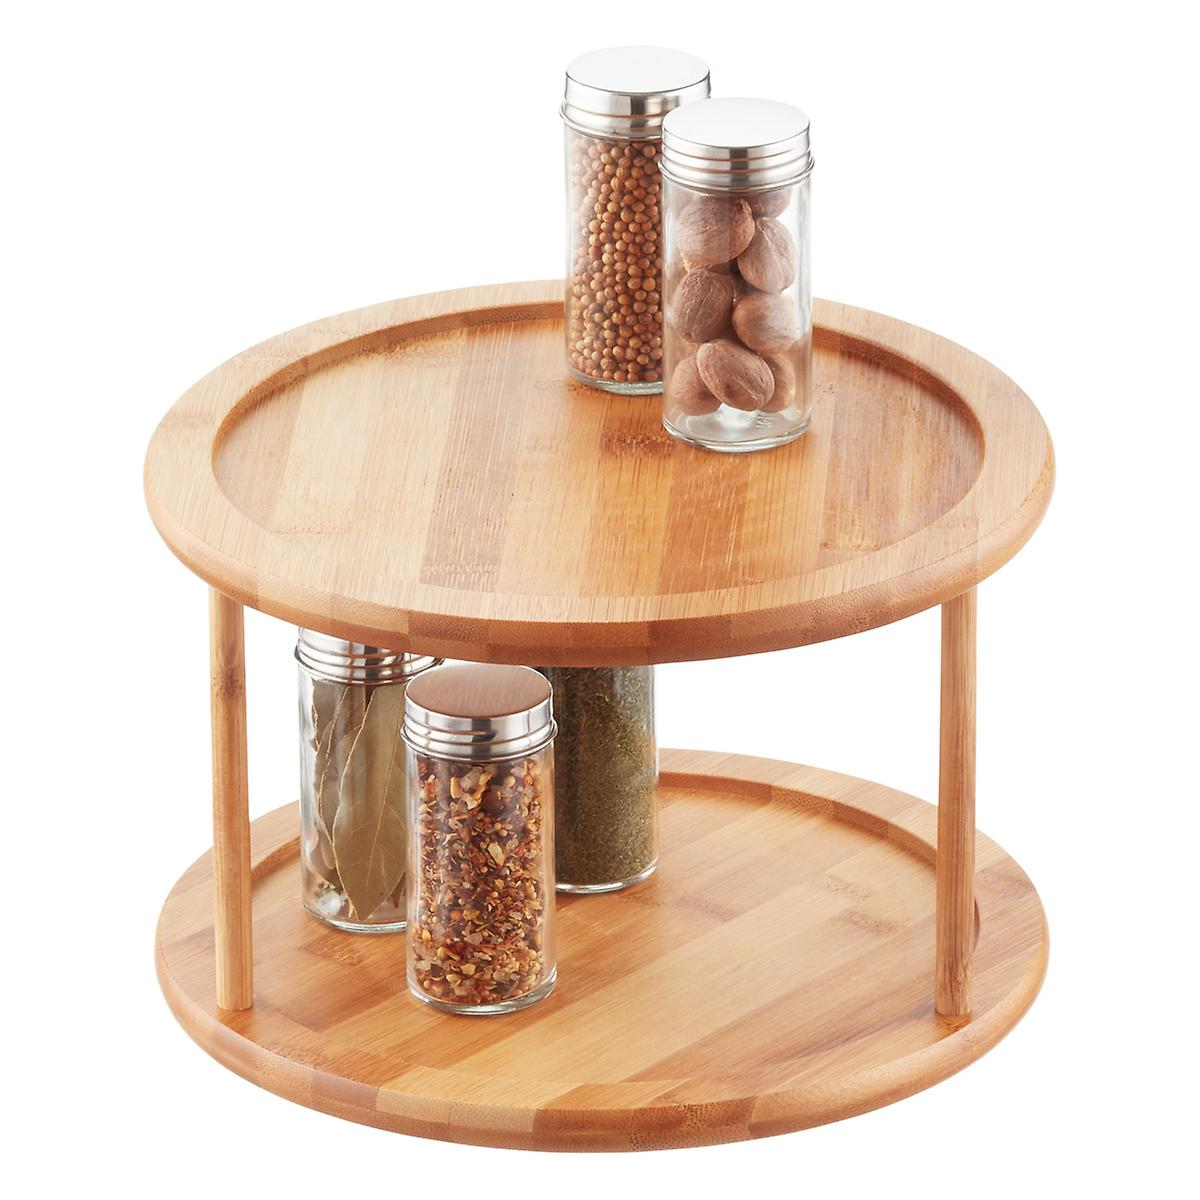 2 Tier Bamboo Lazy Susan The Container Store